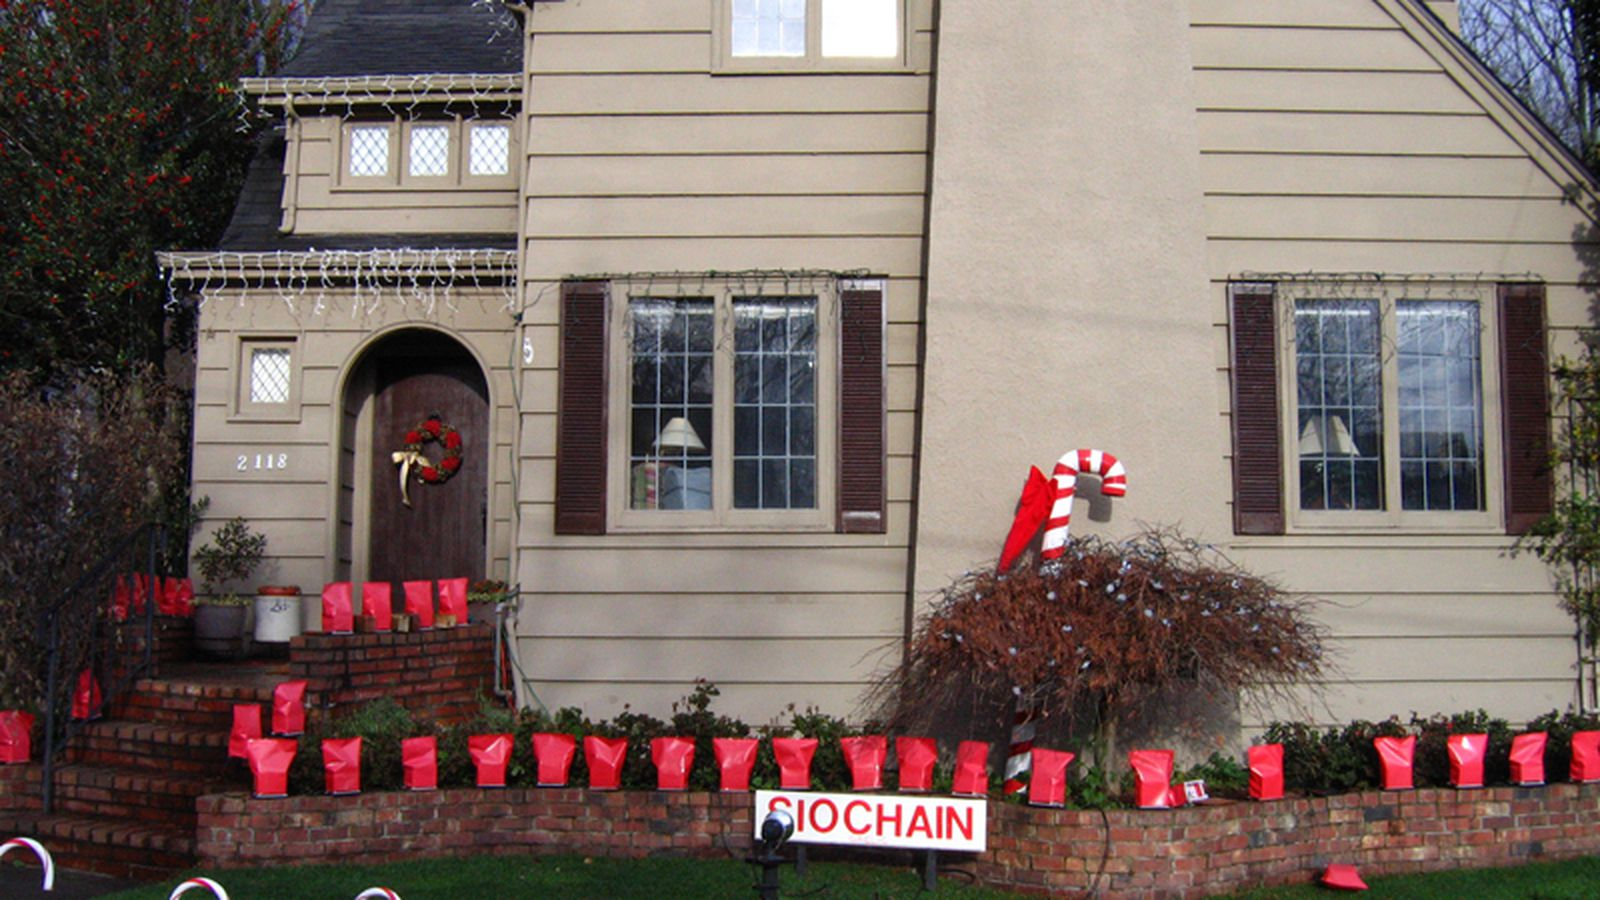 Grinch stealing lights christmas decorations - Some Grinch Stole Candy Cane Lane Christmas Decorations Curbed Seattle